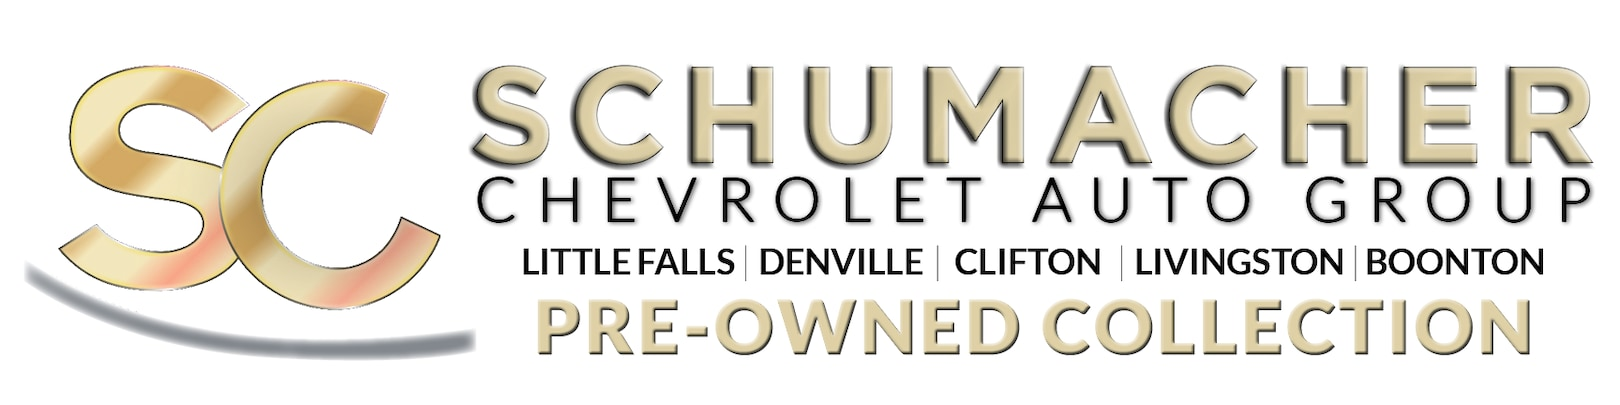 Schumacher Chevrolet Pre-Owned Collection